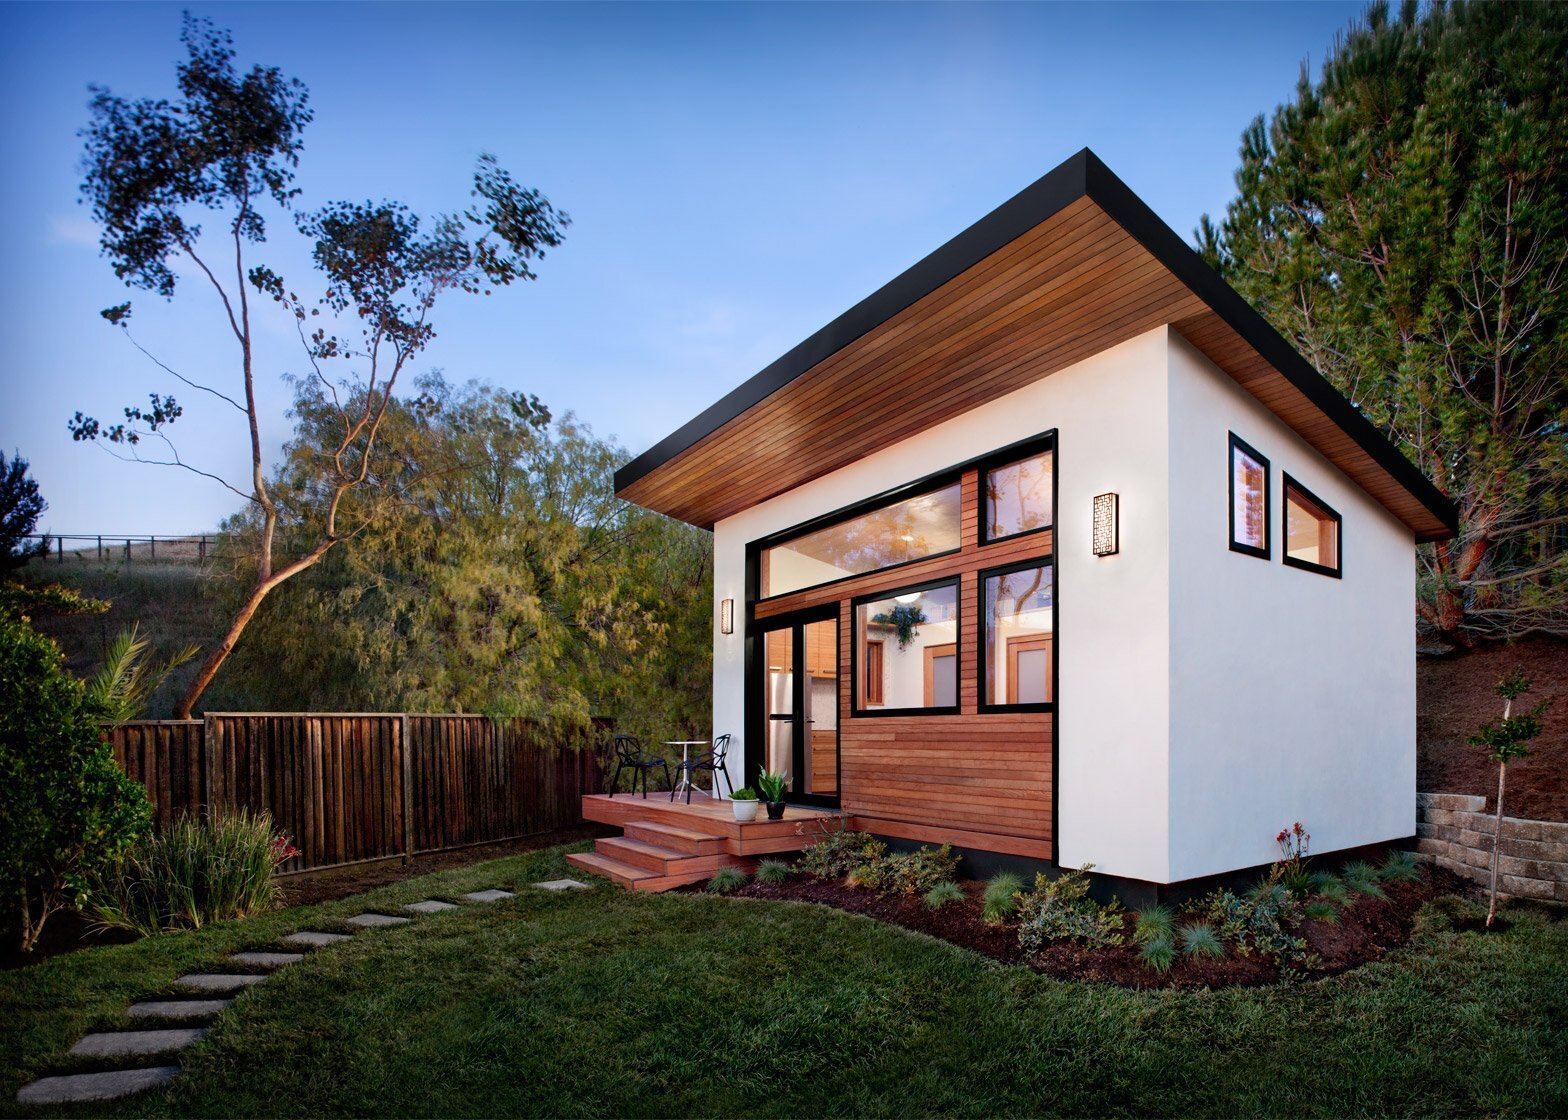 Britespace - A Prefab Tiny Home by Avava that can be Flat-Packed